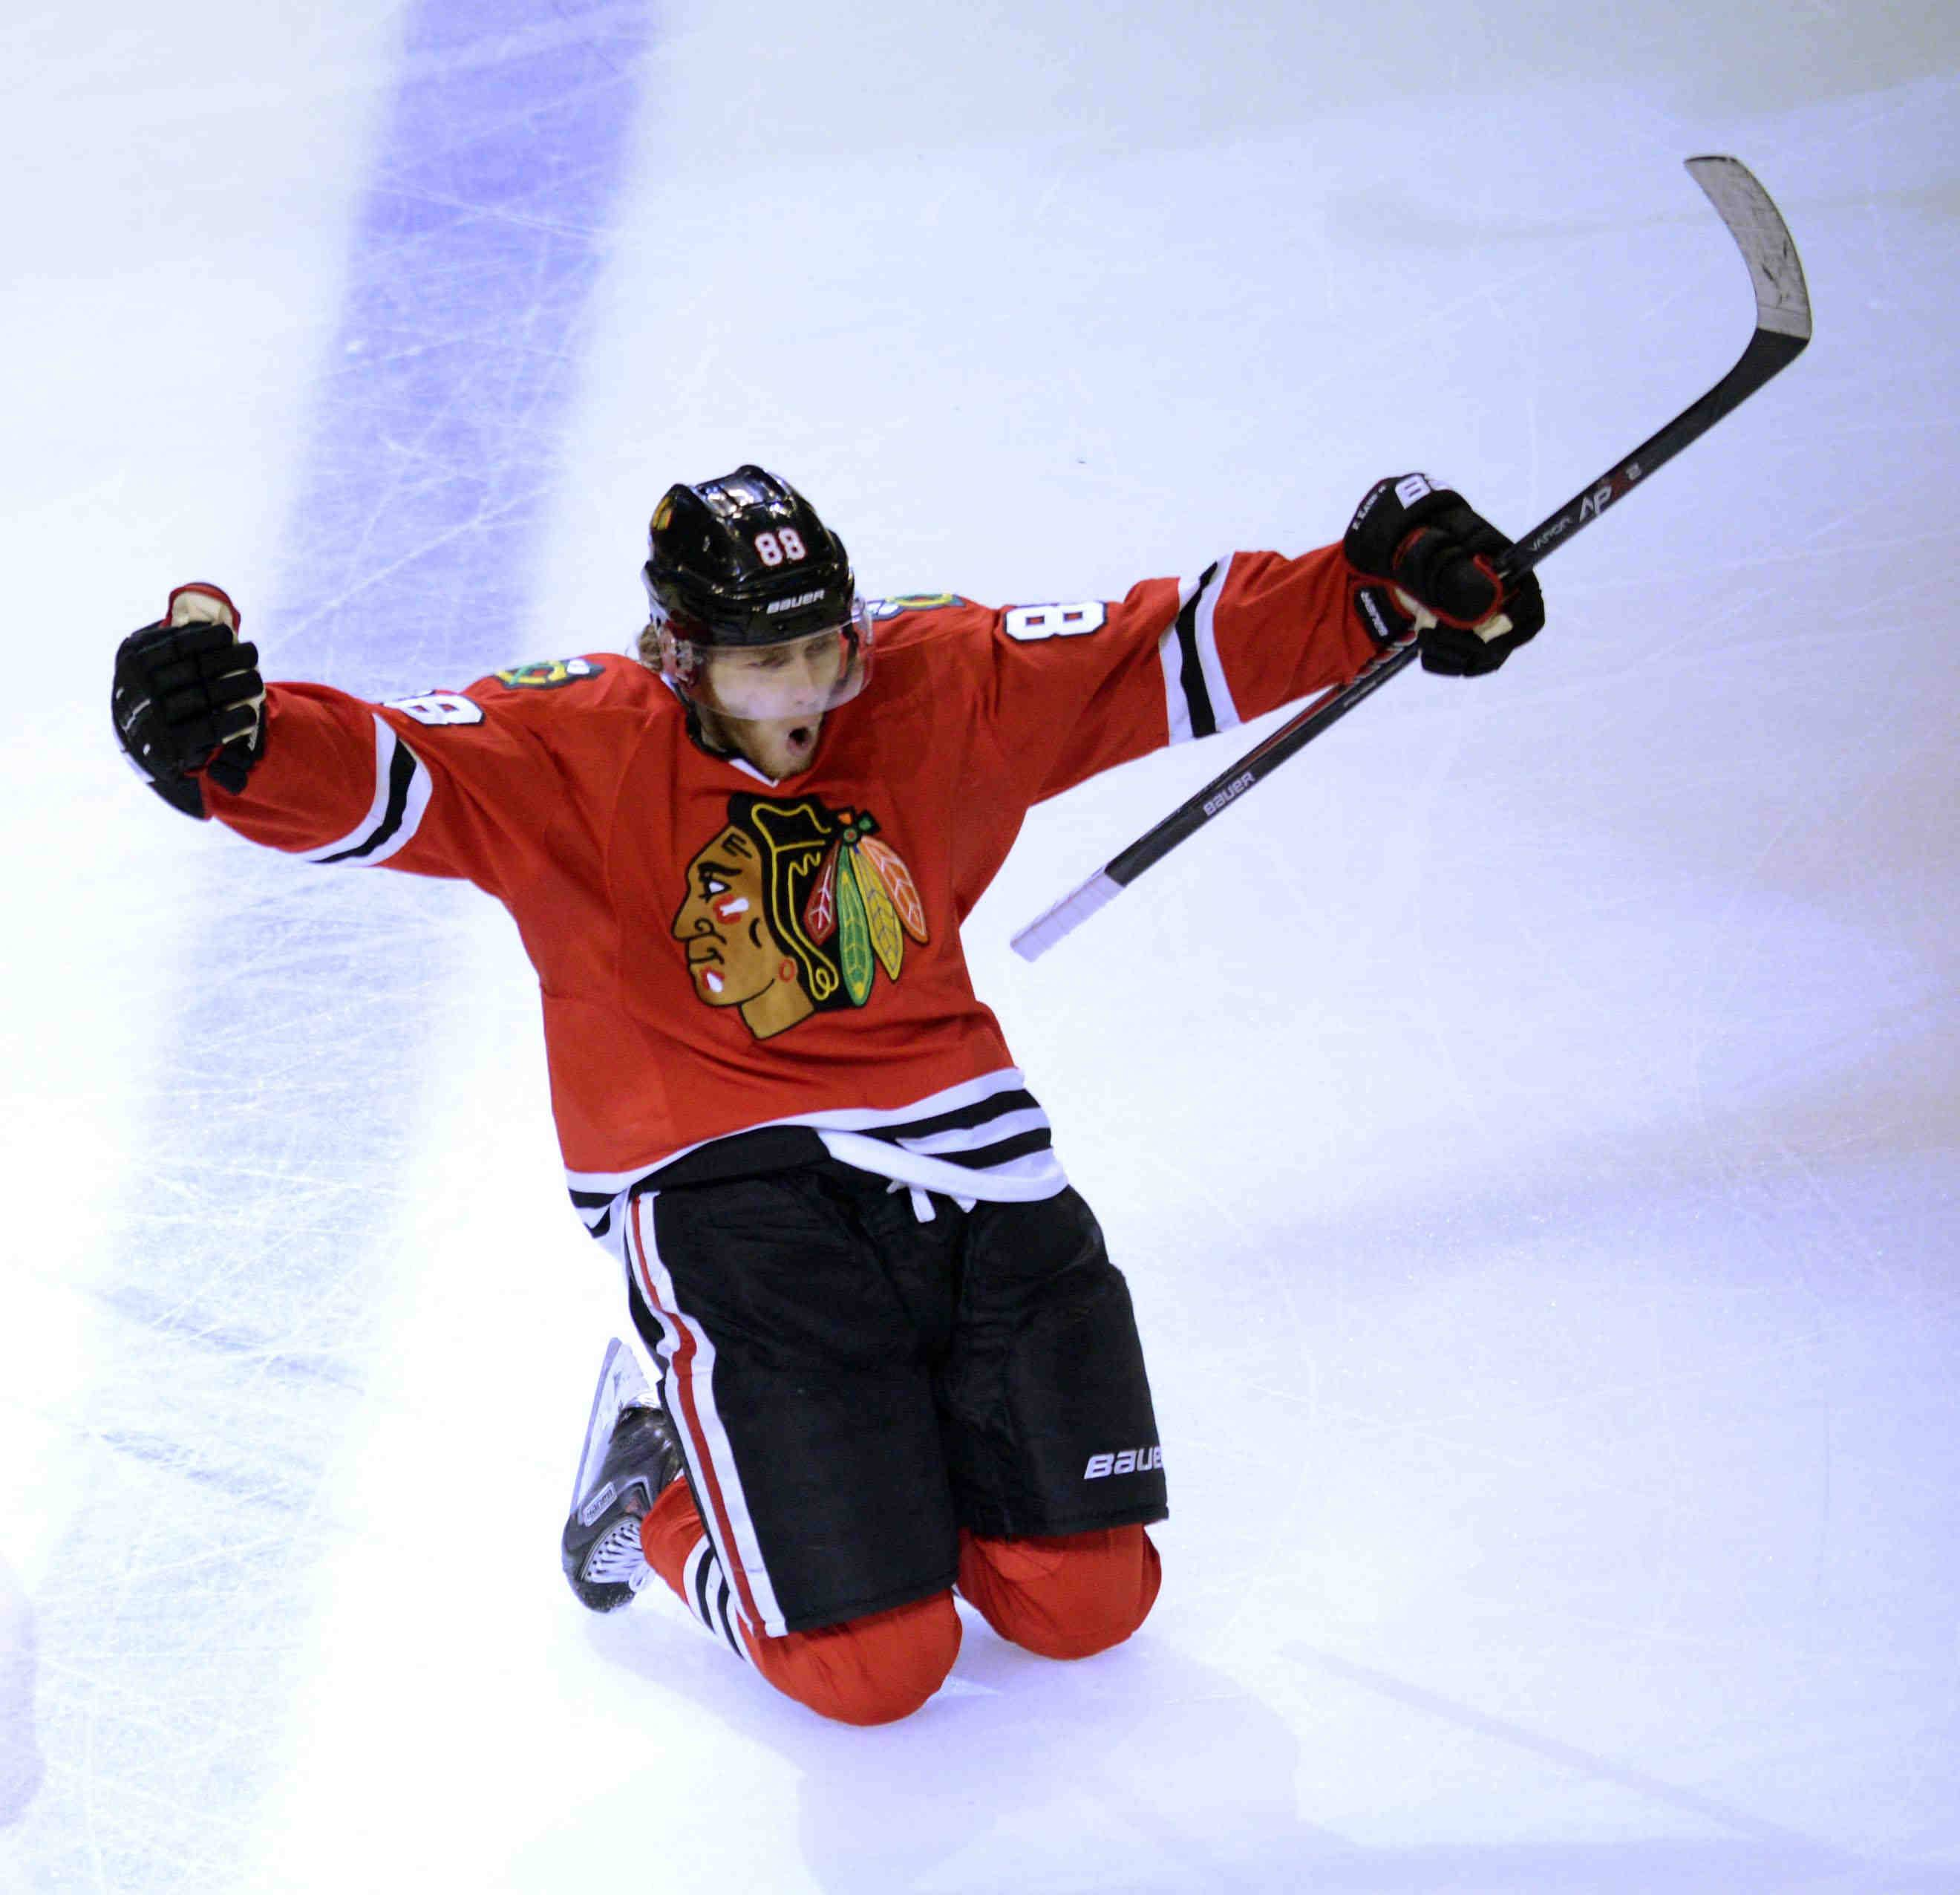 Chicago Blackhawks right wing Patrick Kane slides on his knees after scoring in double overtime to win the NHL Western Conference Finals Game 5 Saturday at the United Center in Chicago.